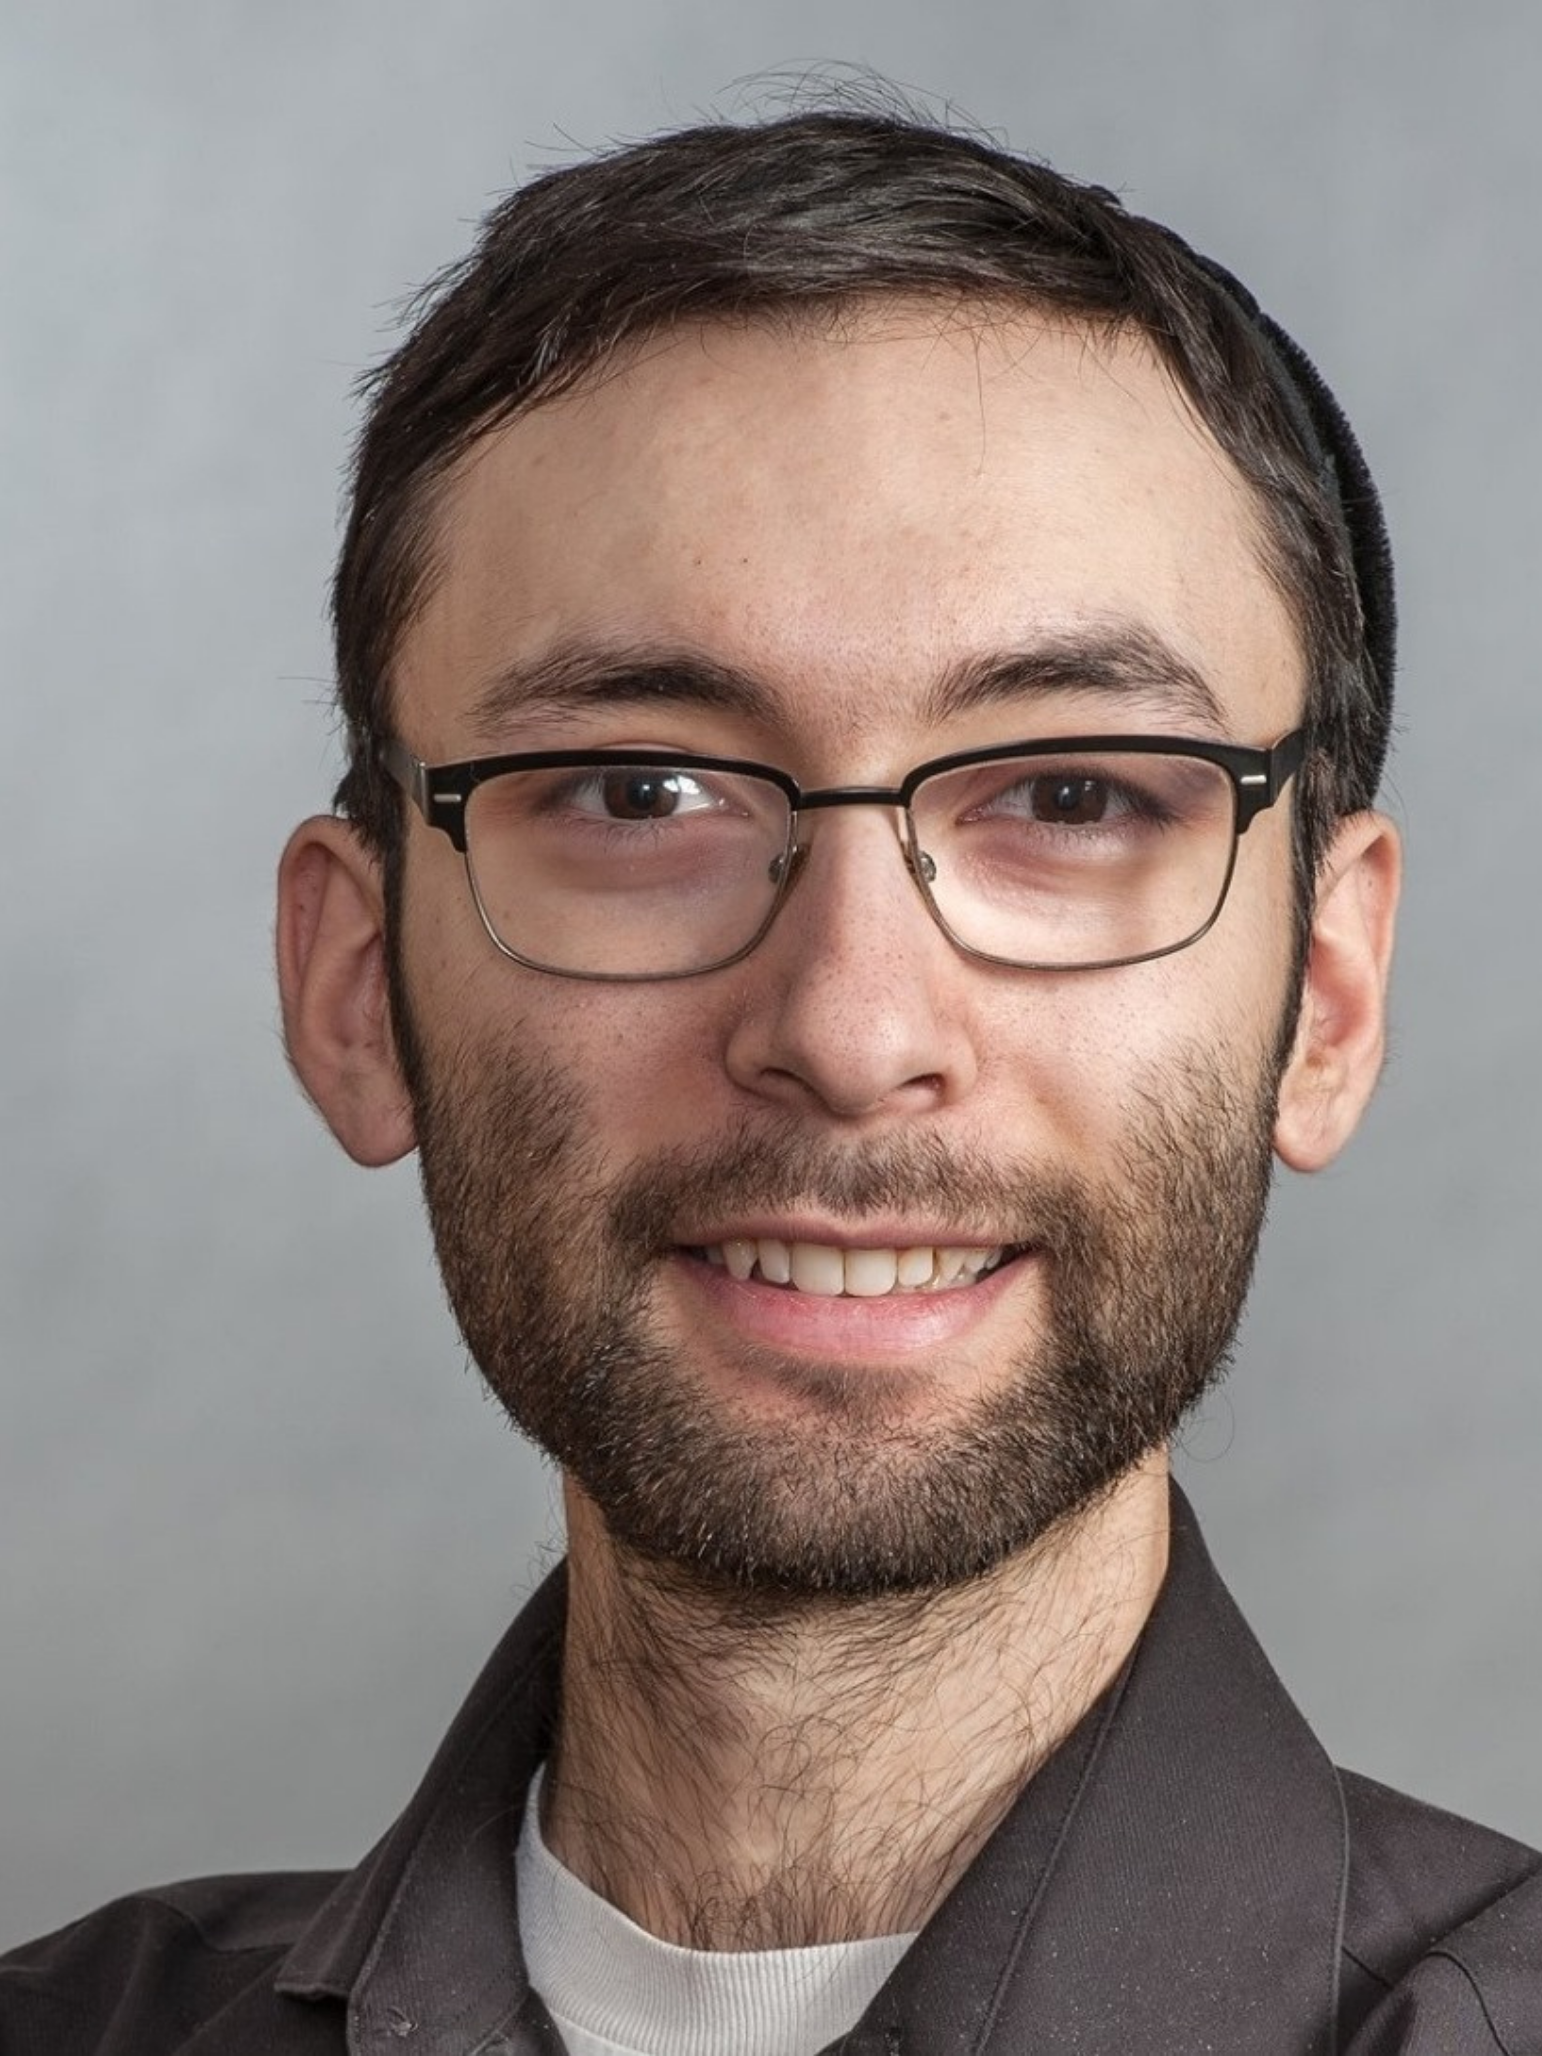 Benjamin Miller's headshot. Benjamin is facing the camera with a smile and wearing spectacles.